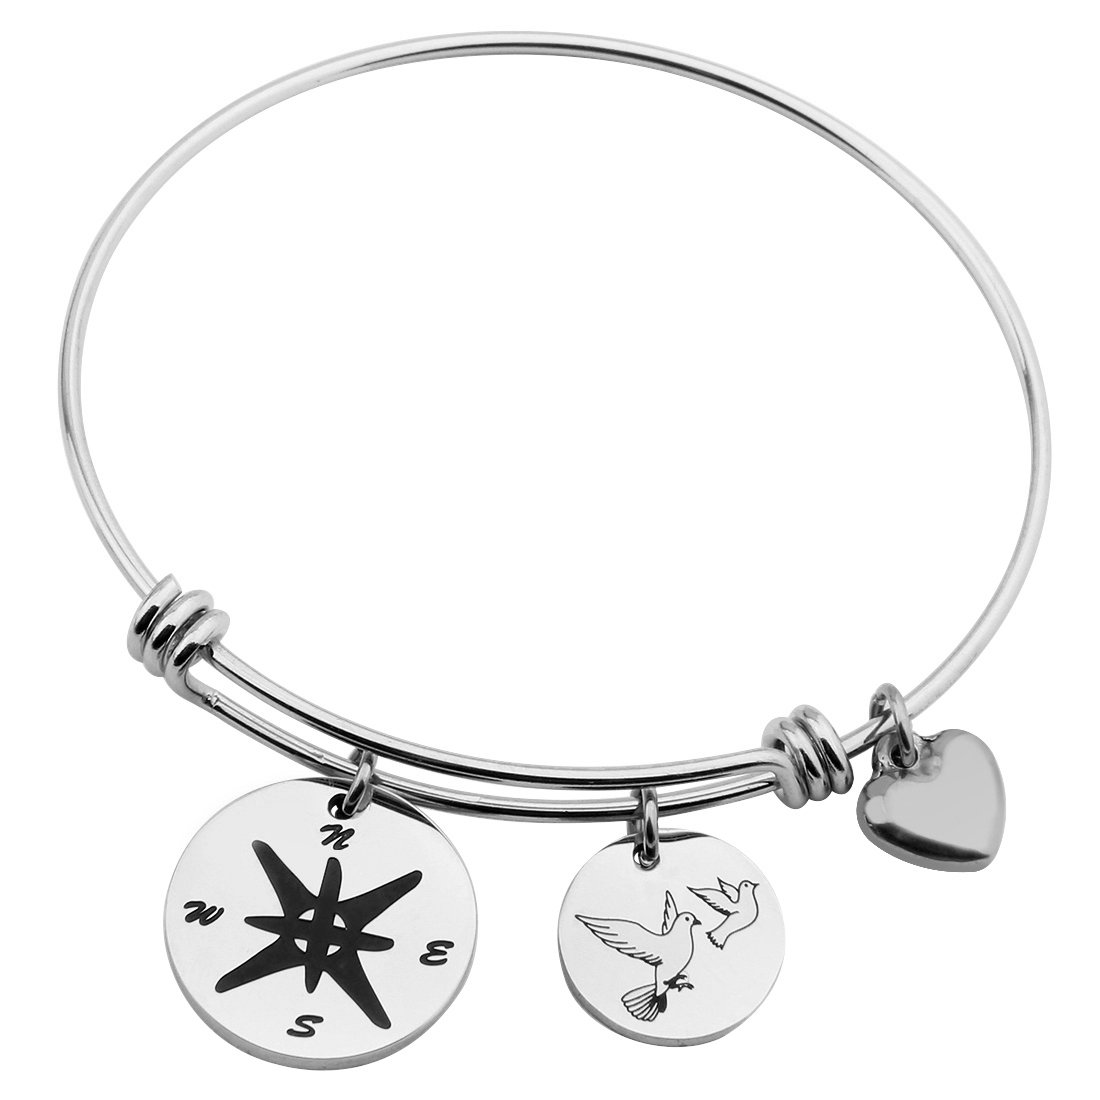 Gzrlyf Compass Charm Bracelet Stainless Steel Pigeon Bracelet Best Friends Bracelet Travel Gift(compass bracelet) by Gzrlyf